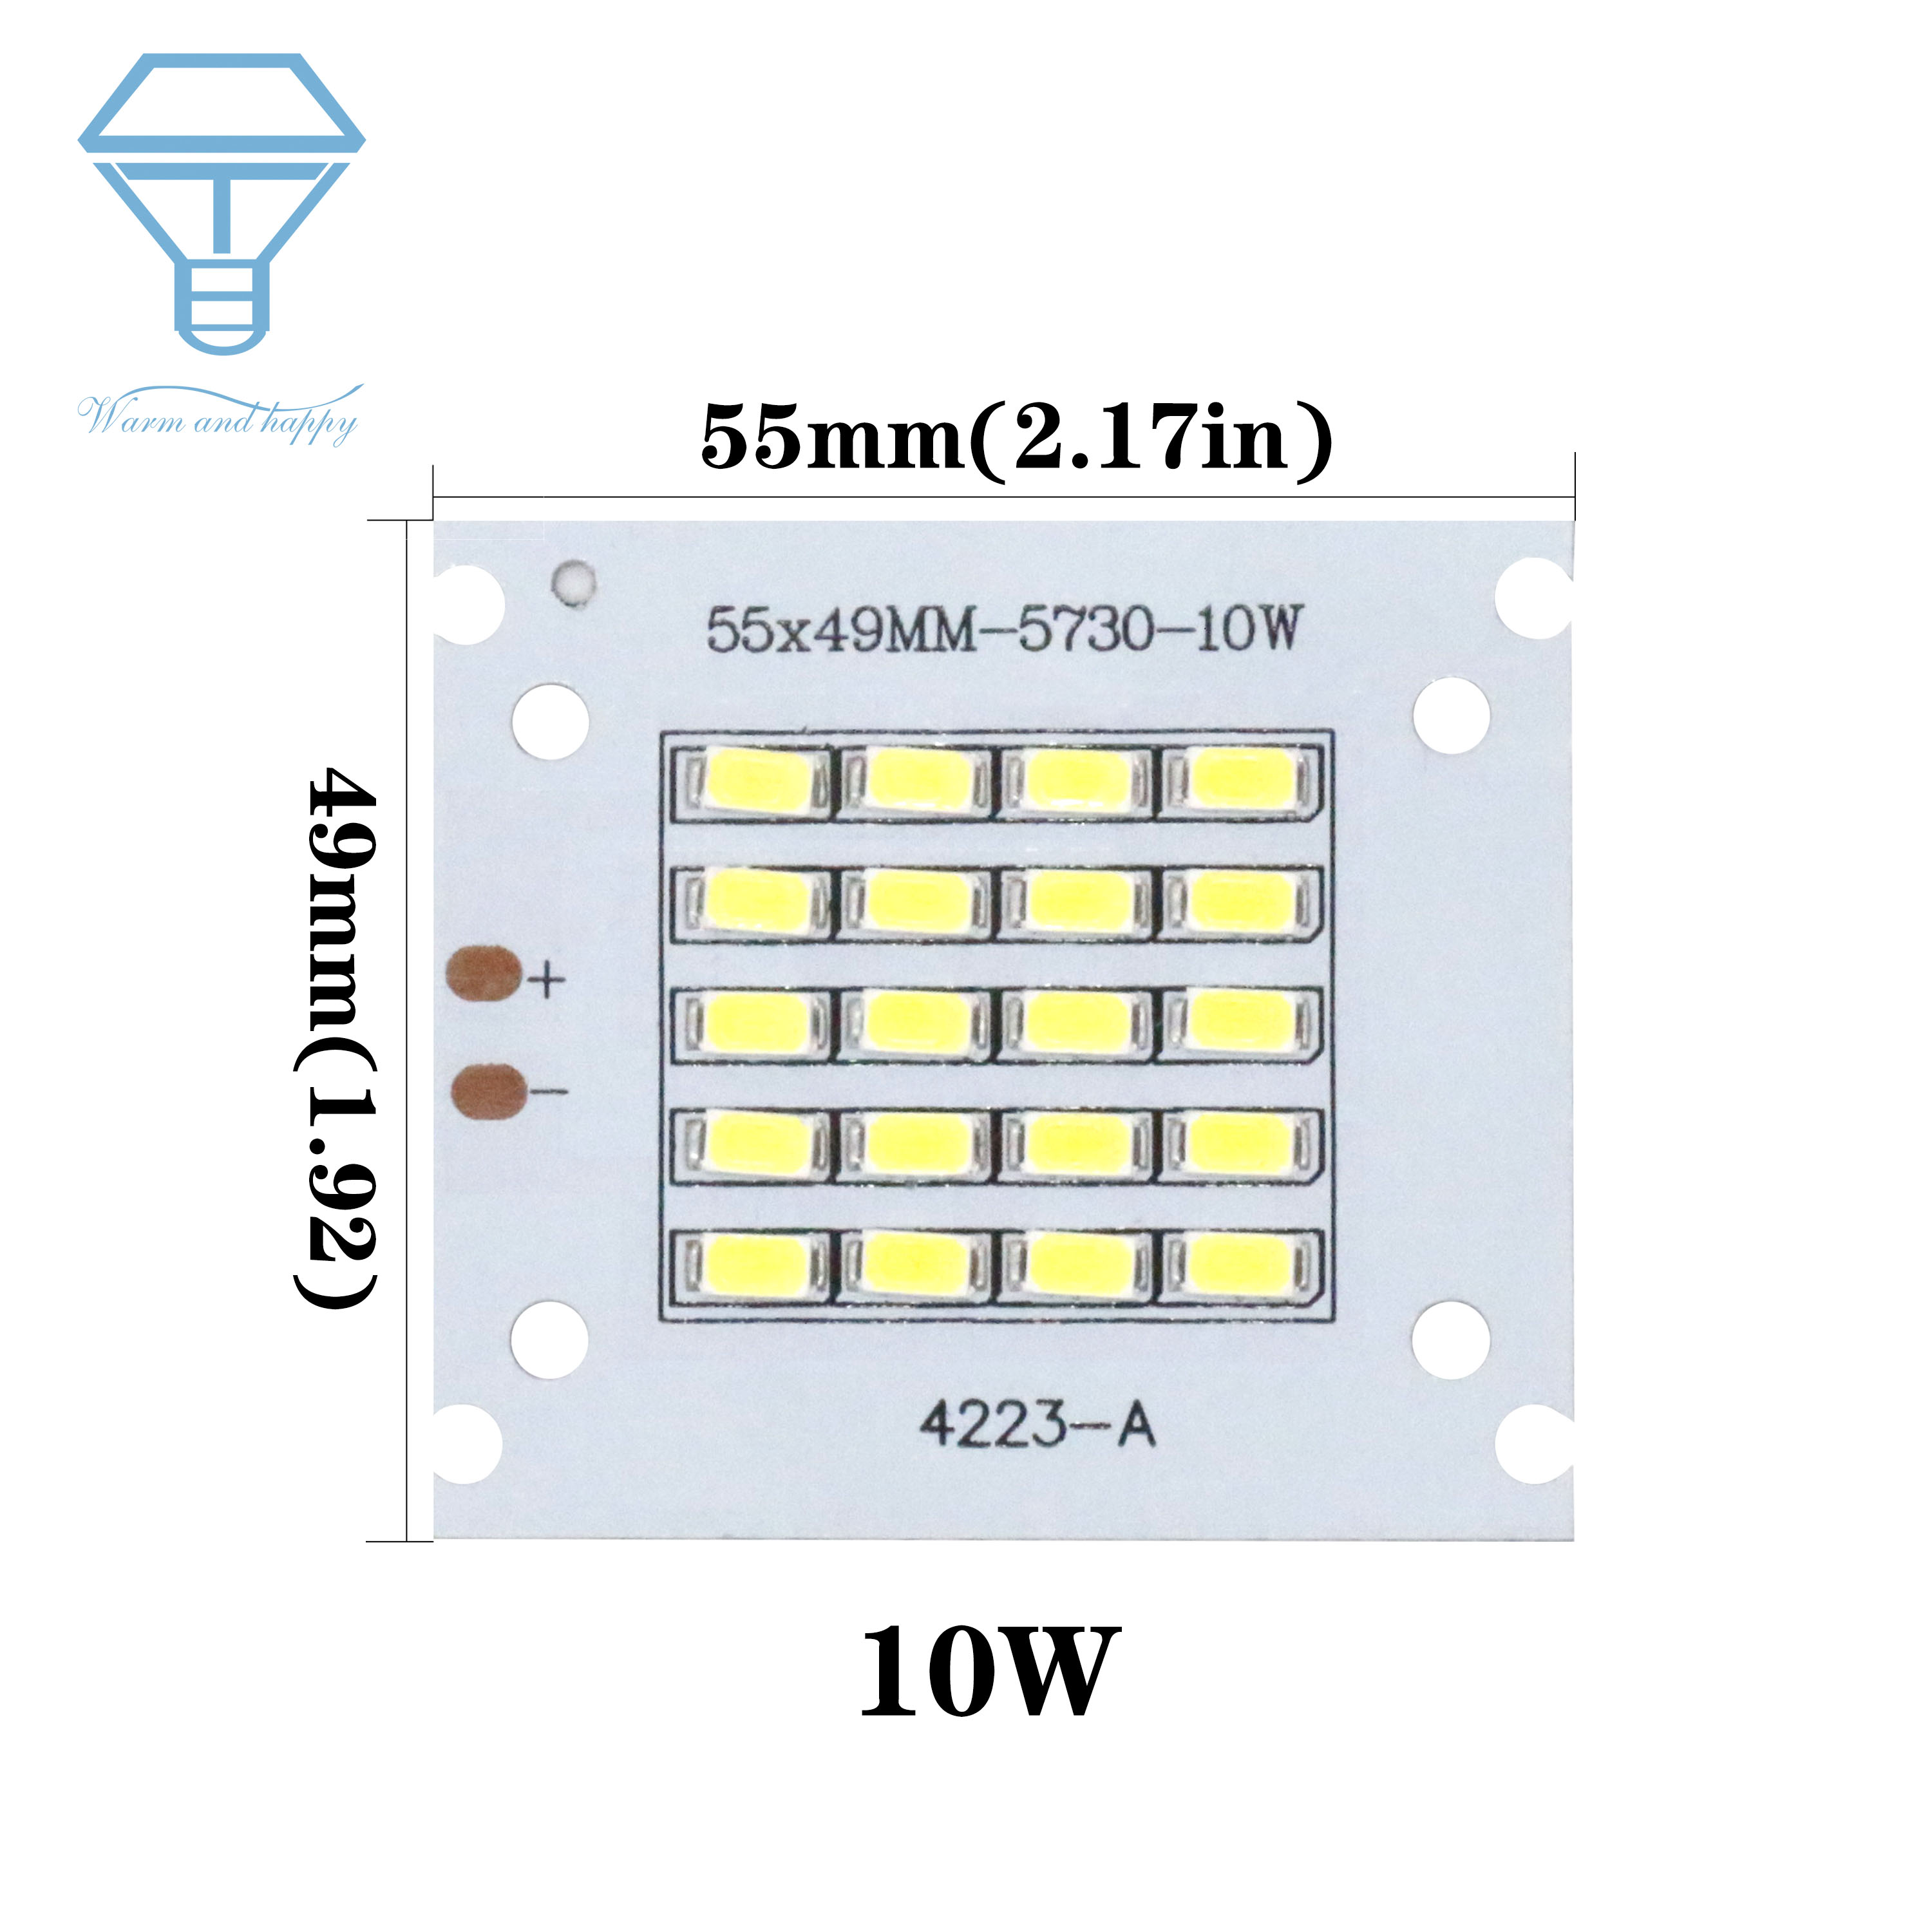 50W 100W 150W 200W SMD5730 LED Chip Lamp Beads High Power LED Floodlight 30-36V For Indoor Outdoor DIY PCB Kit